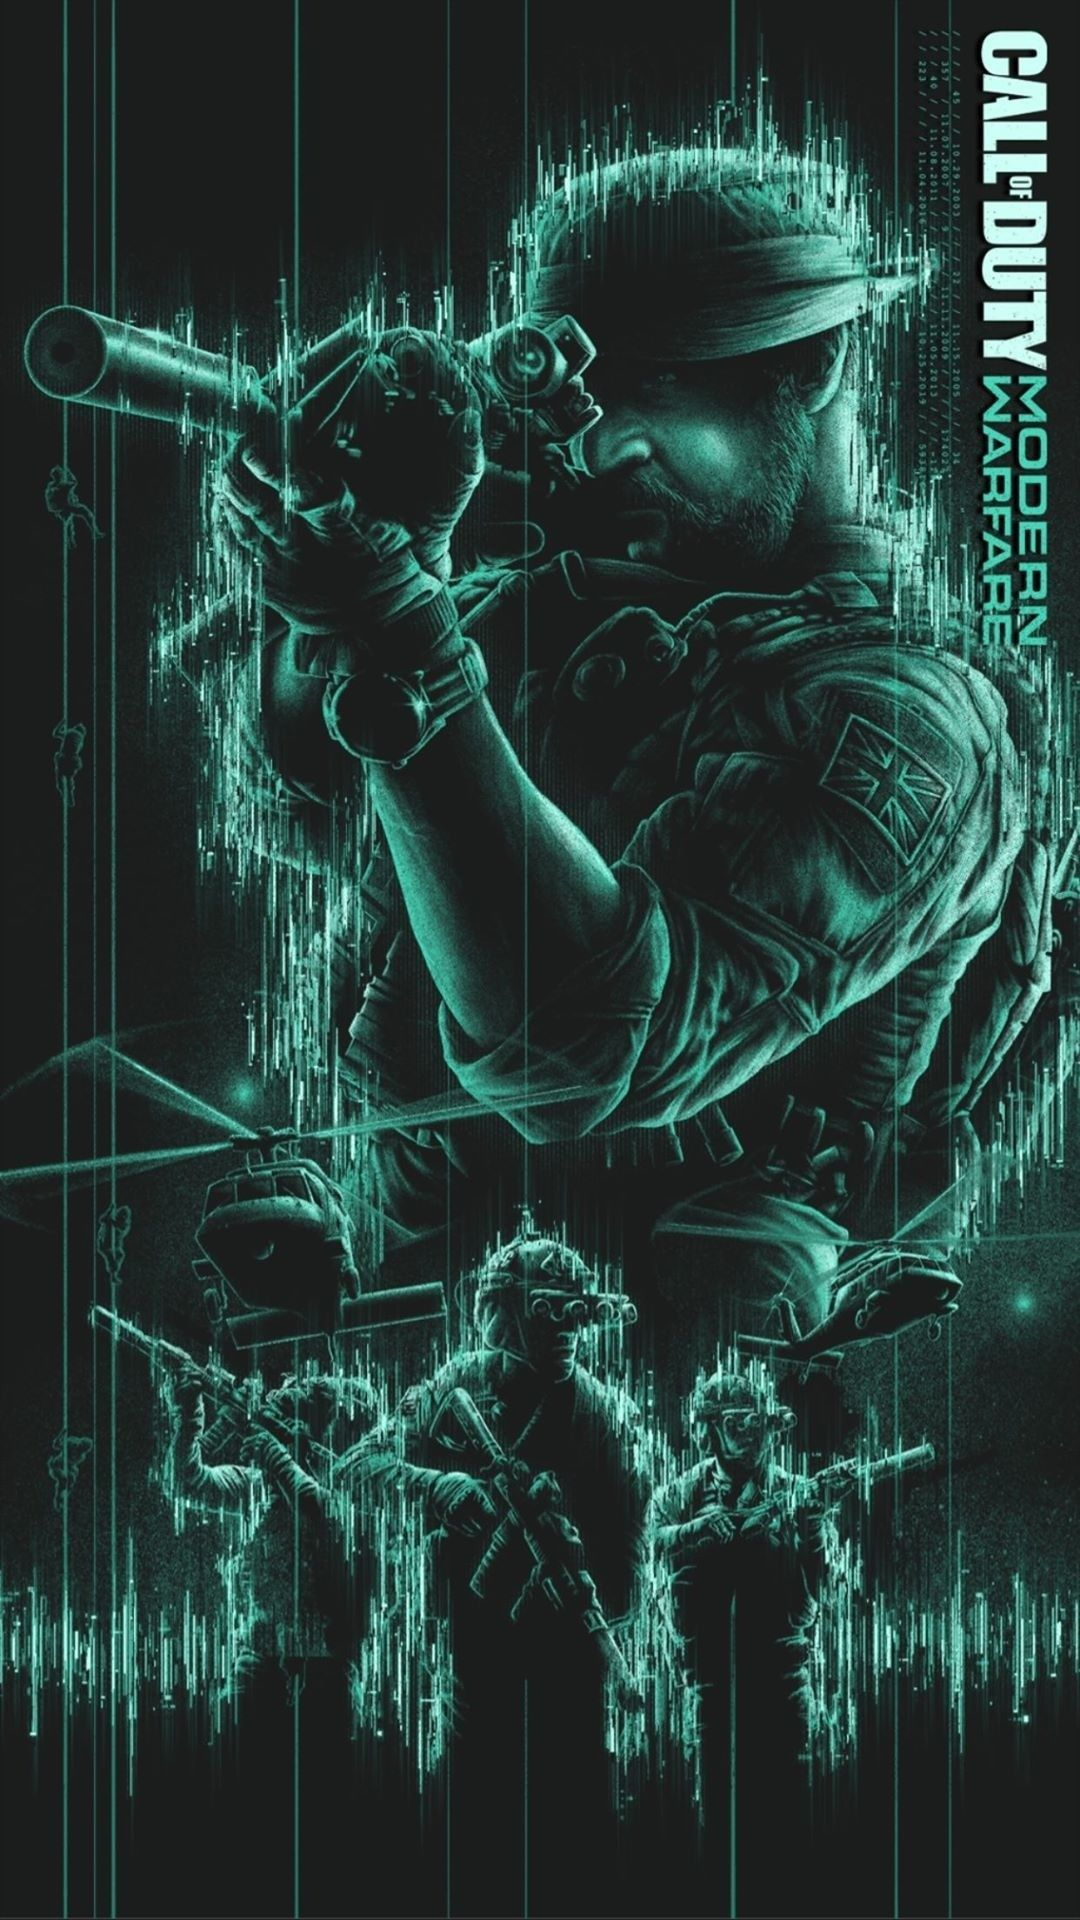 Spectre Call Of Duty Black Ops 3 Wallpaper Android Download 1080x1920